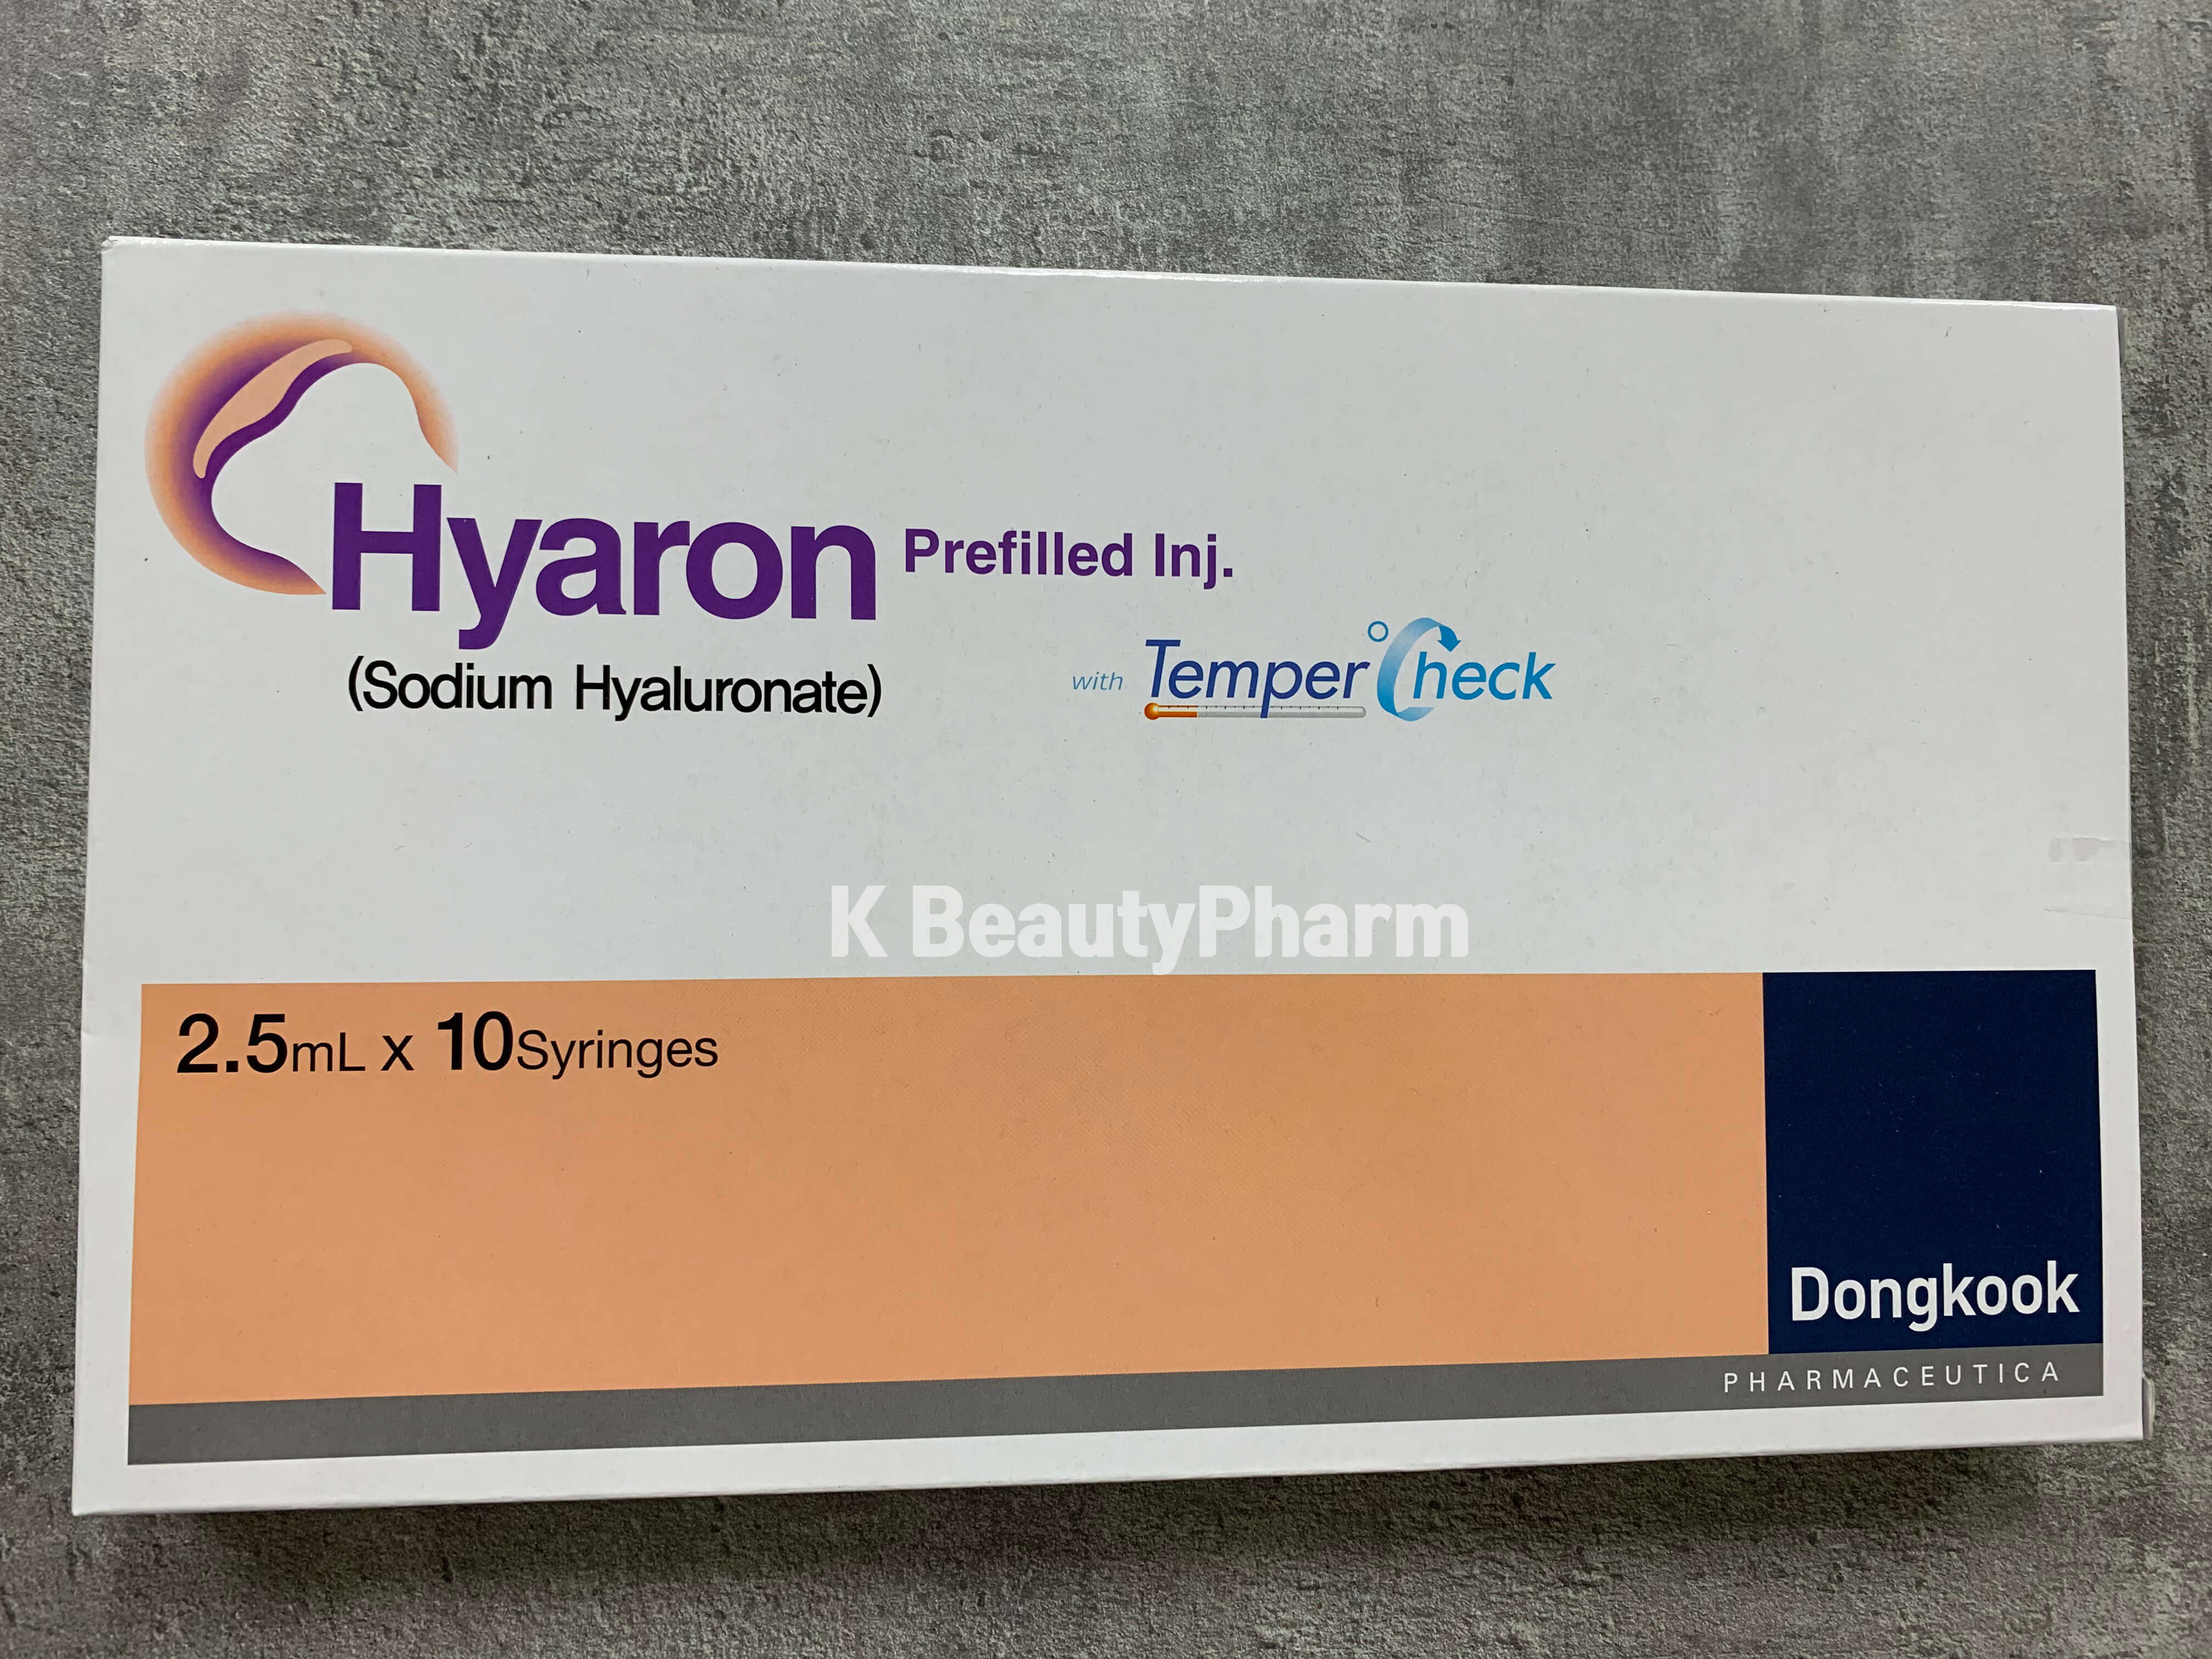 HYARON (Sodium Hyaluronate)